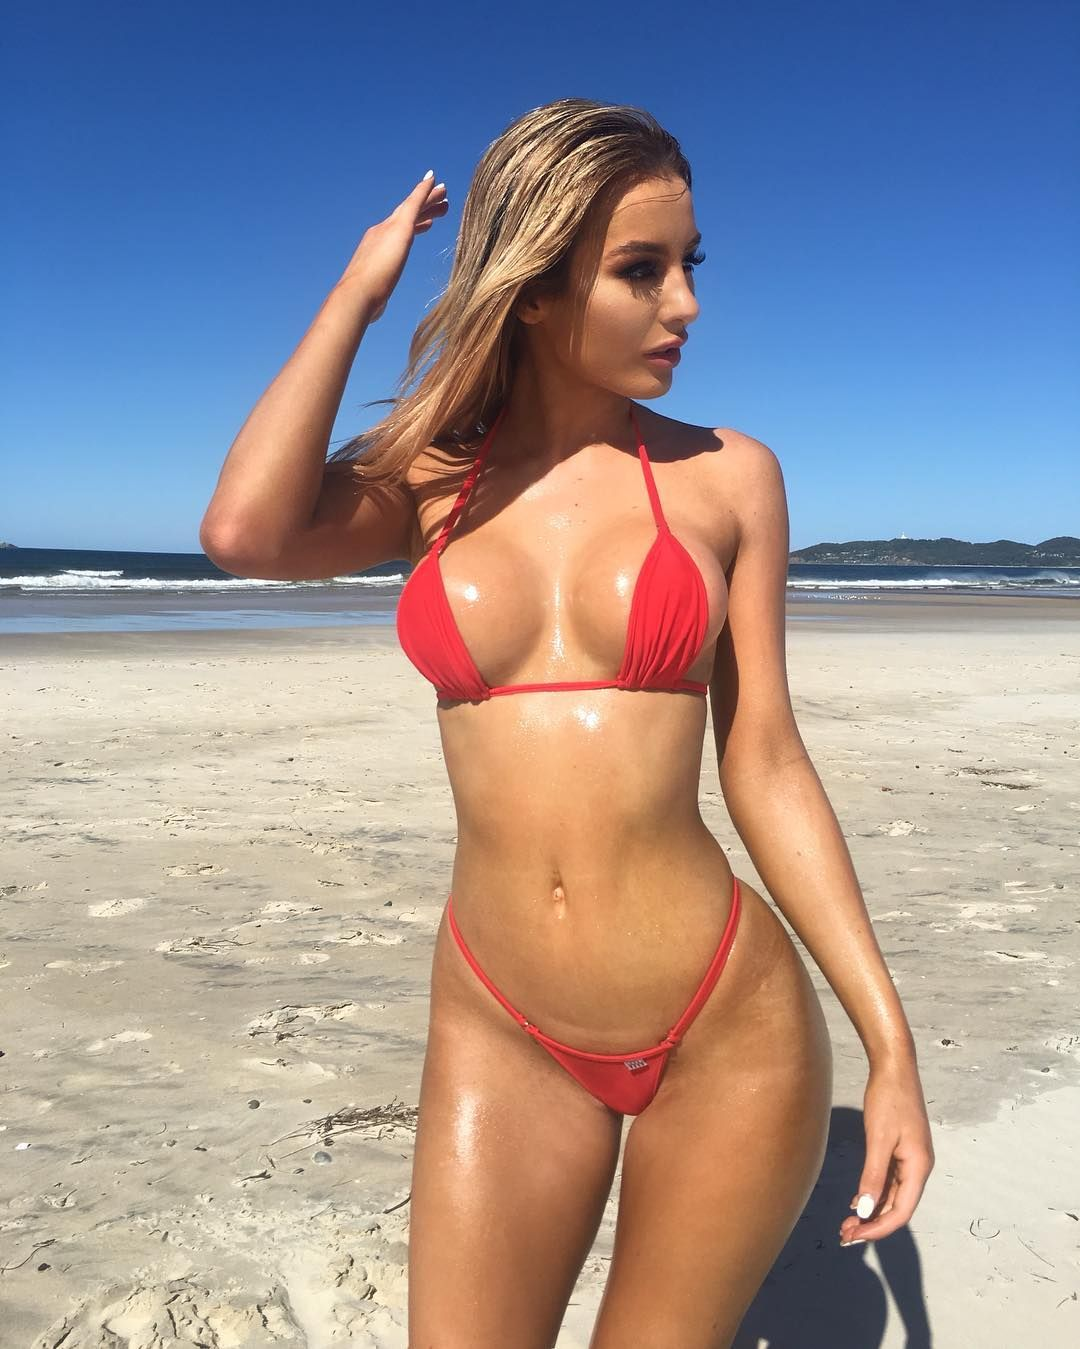 Blonde bombshell Lucie Jaid in a tiny red bikini